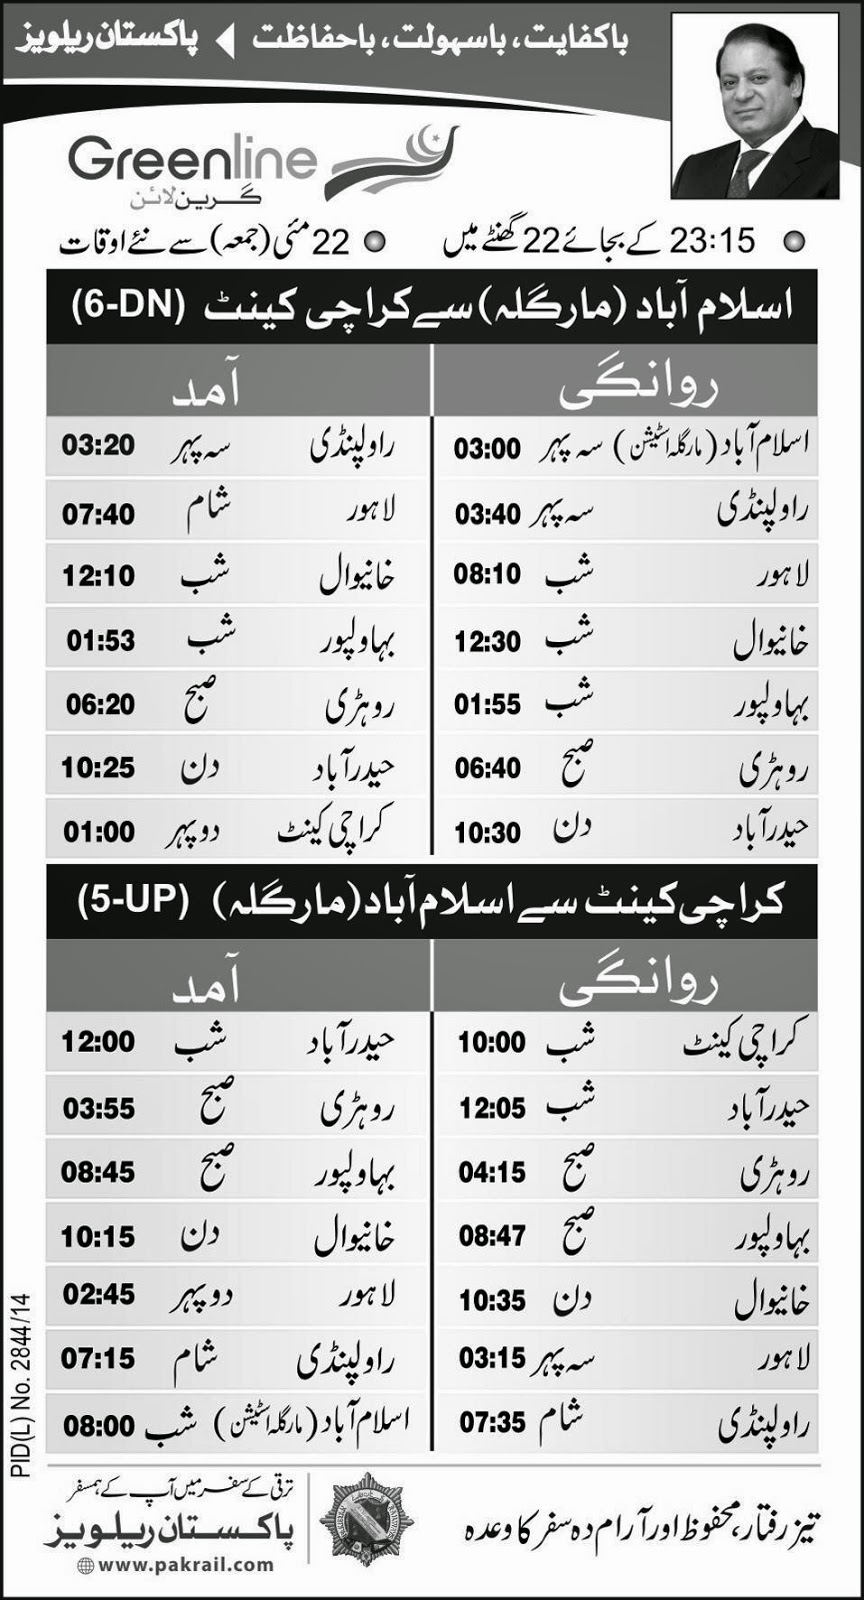 Green Line Rail Schedule from Islamabad to Karachi